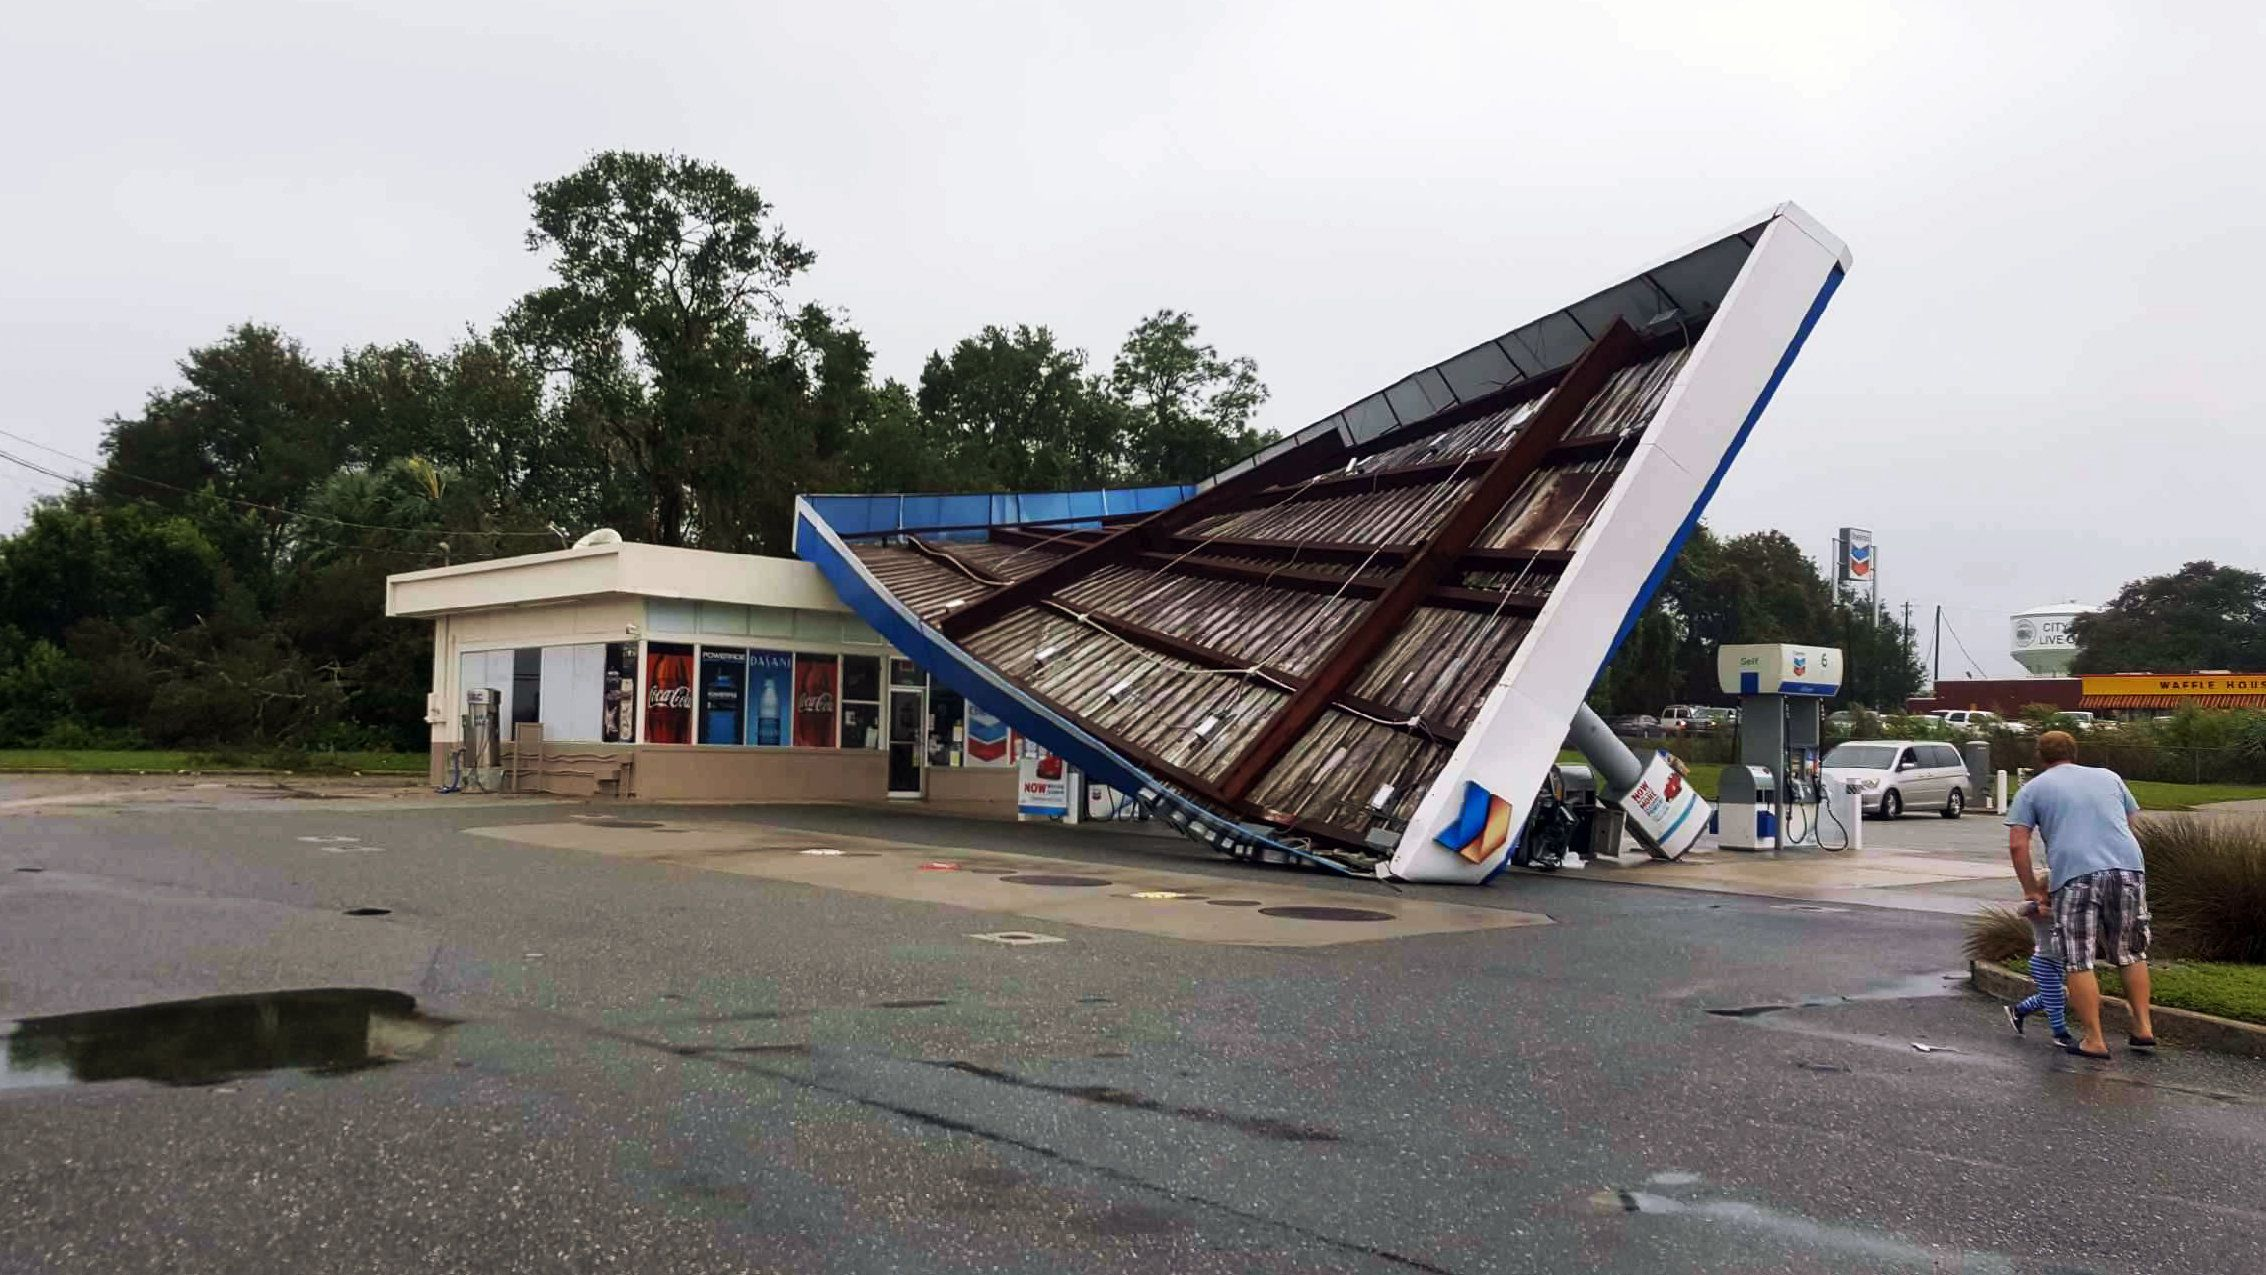 A chevron station blown over in the city of Live Oak Fl